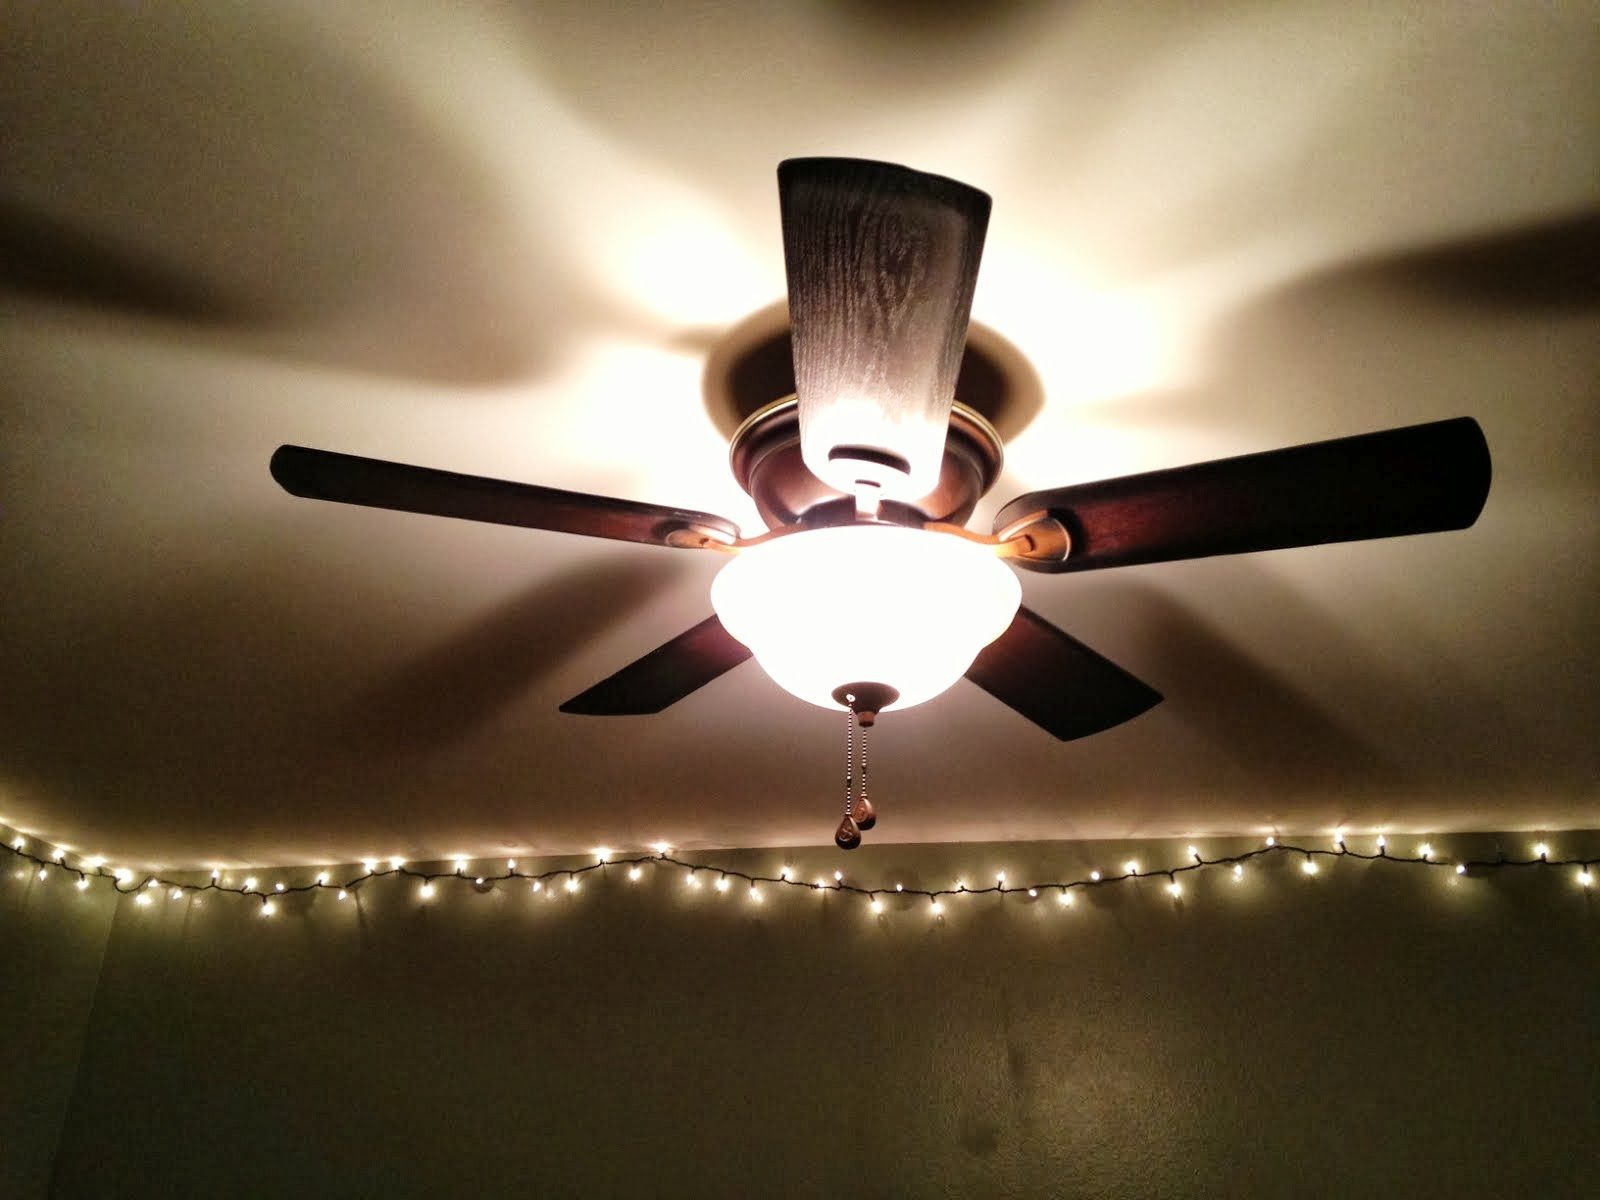 Harbor Breeze Keyport Pajero Wiring Diagram One New Thing Daily Ceiling Fans Our Room